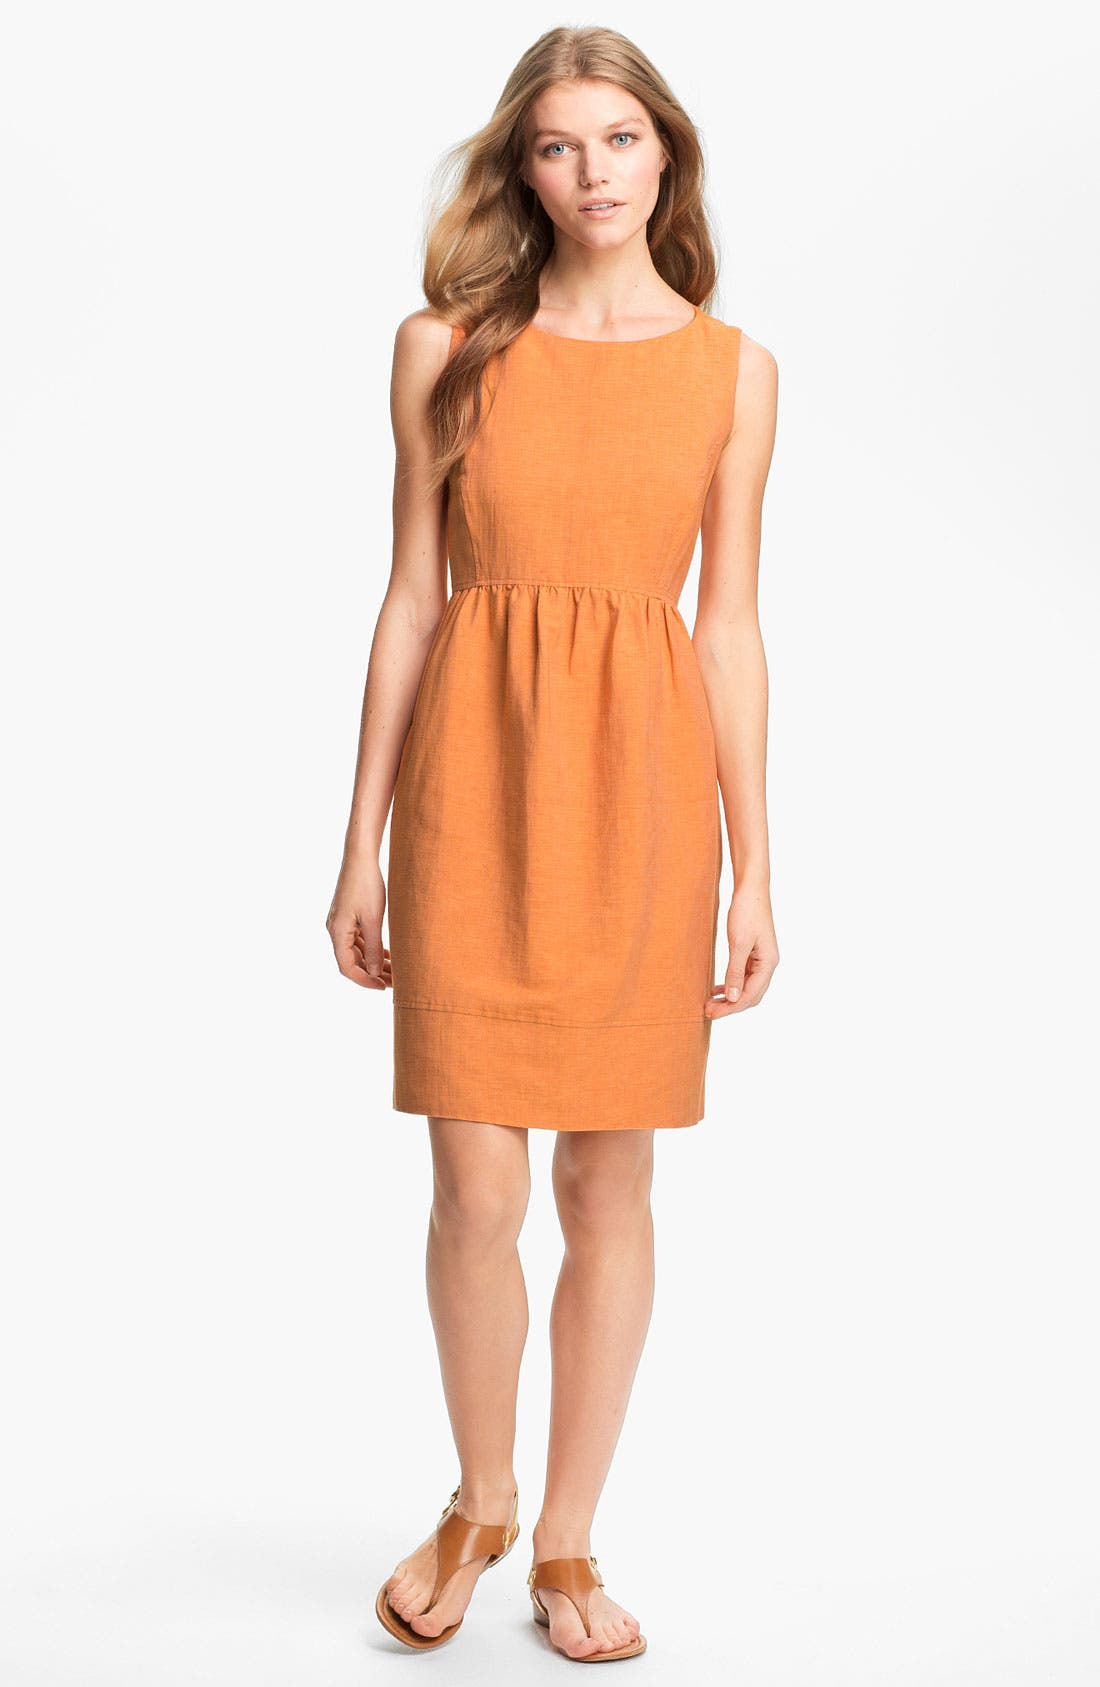 Main Image - Weekend Max Mara 'Hot' Sleeveless Dress